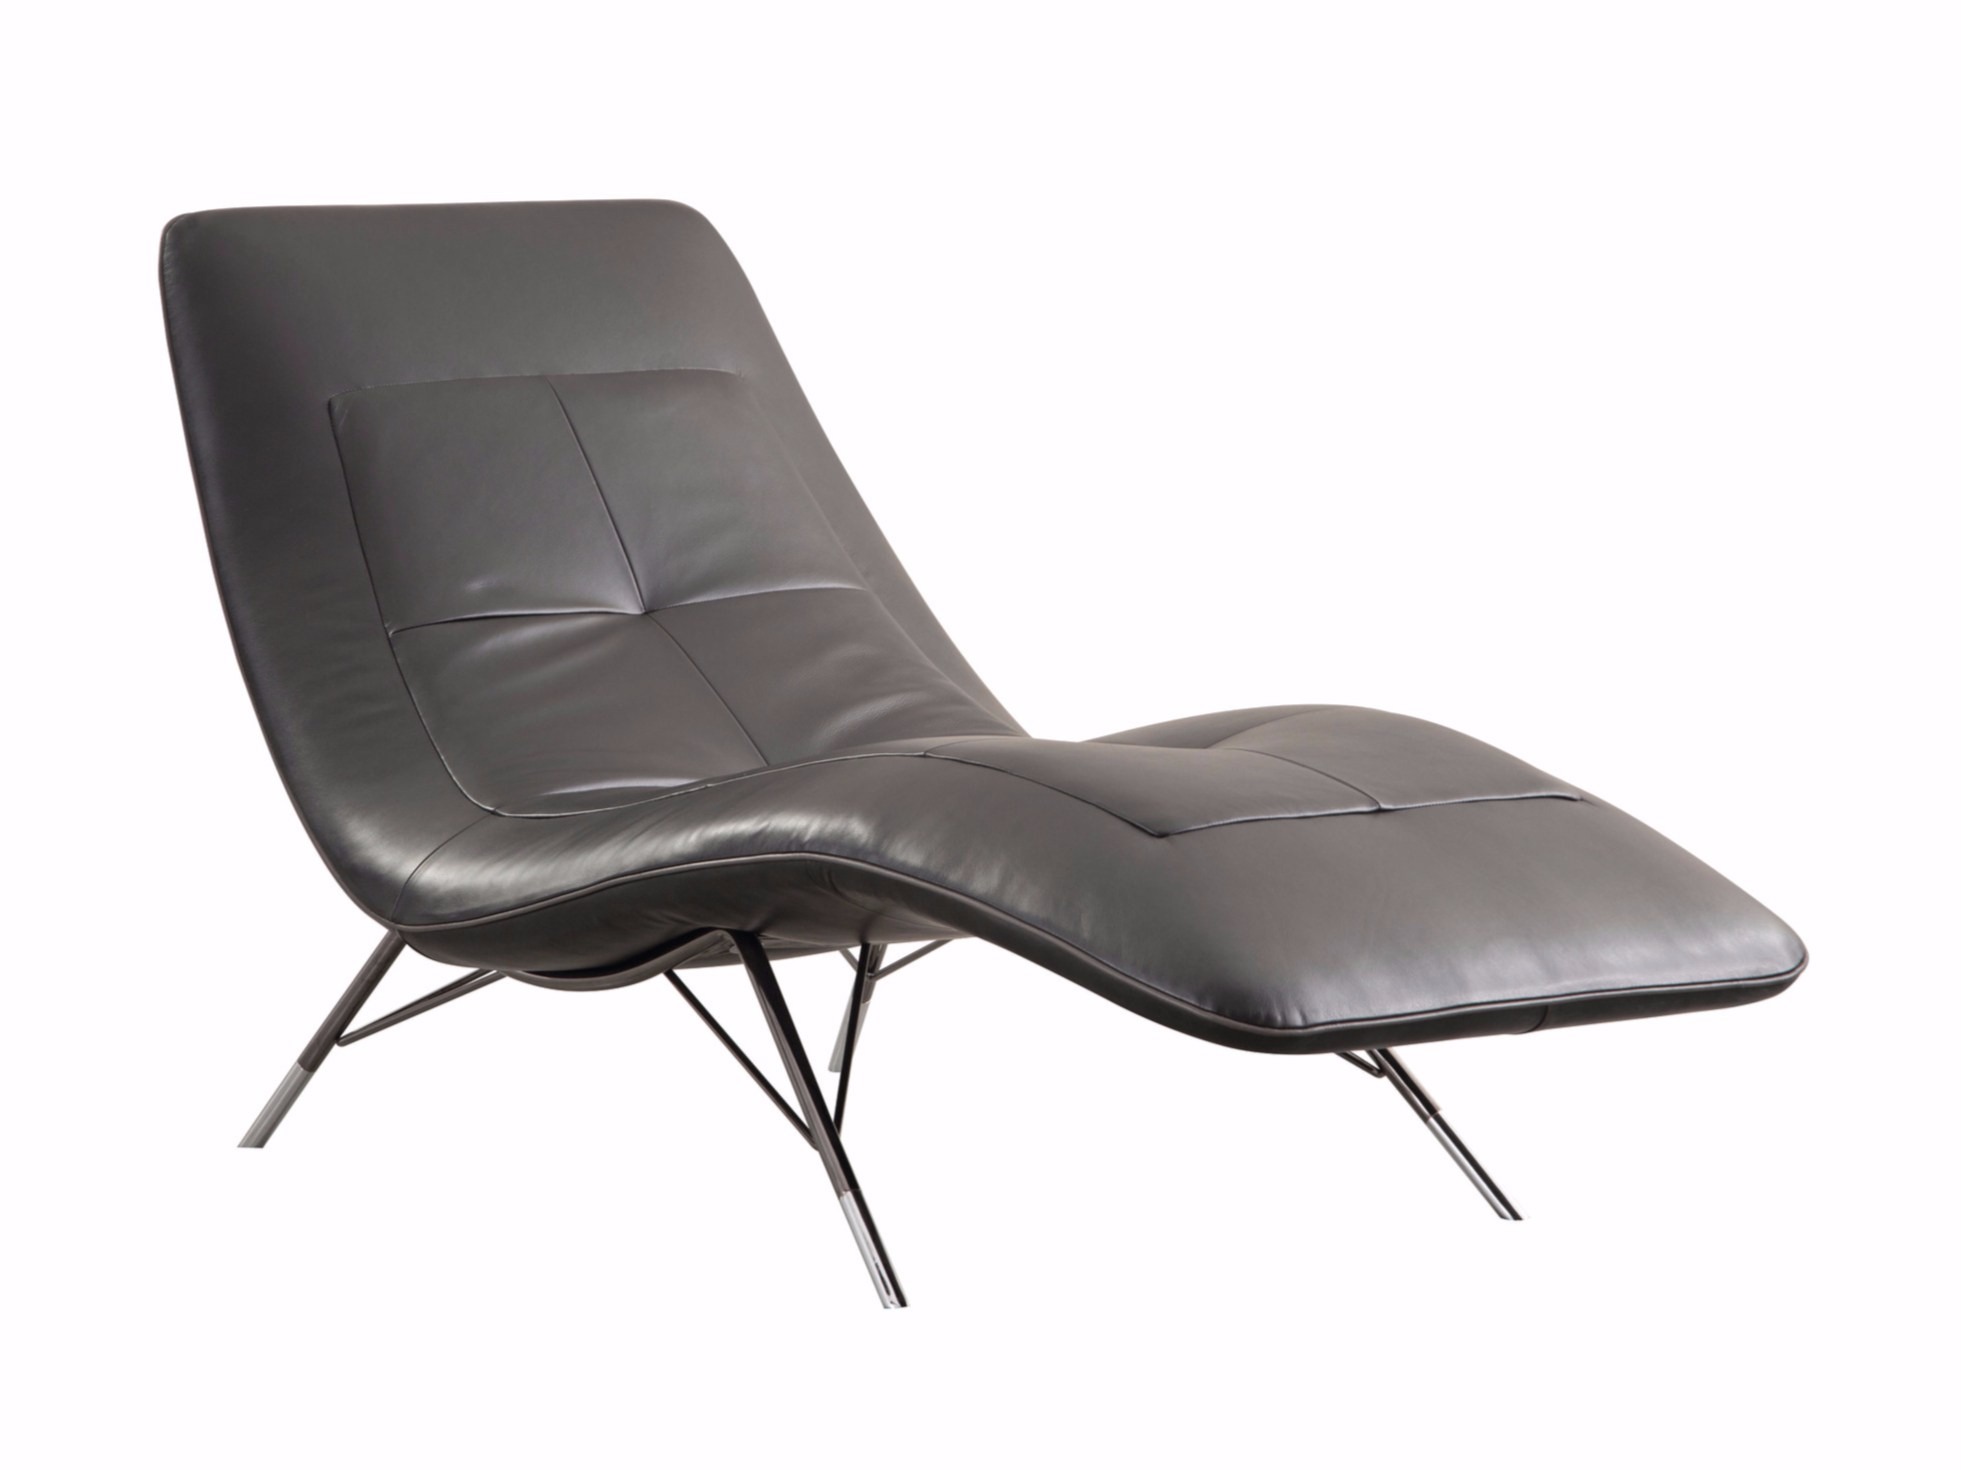 Chaise longue estofada de pele solaris by roche bobois for Chaise longue roche bobois